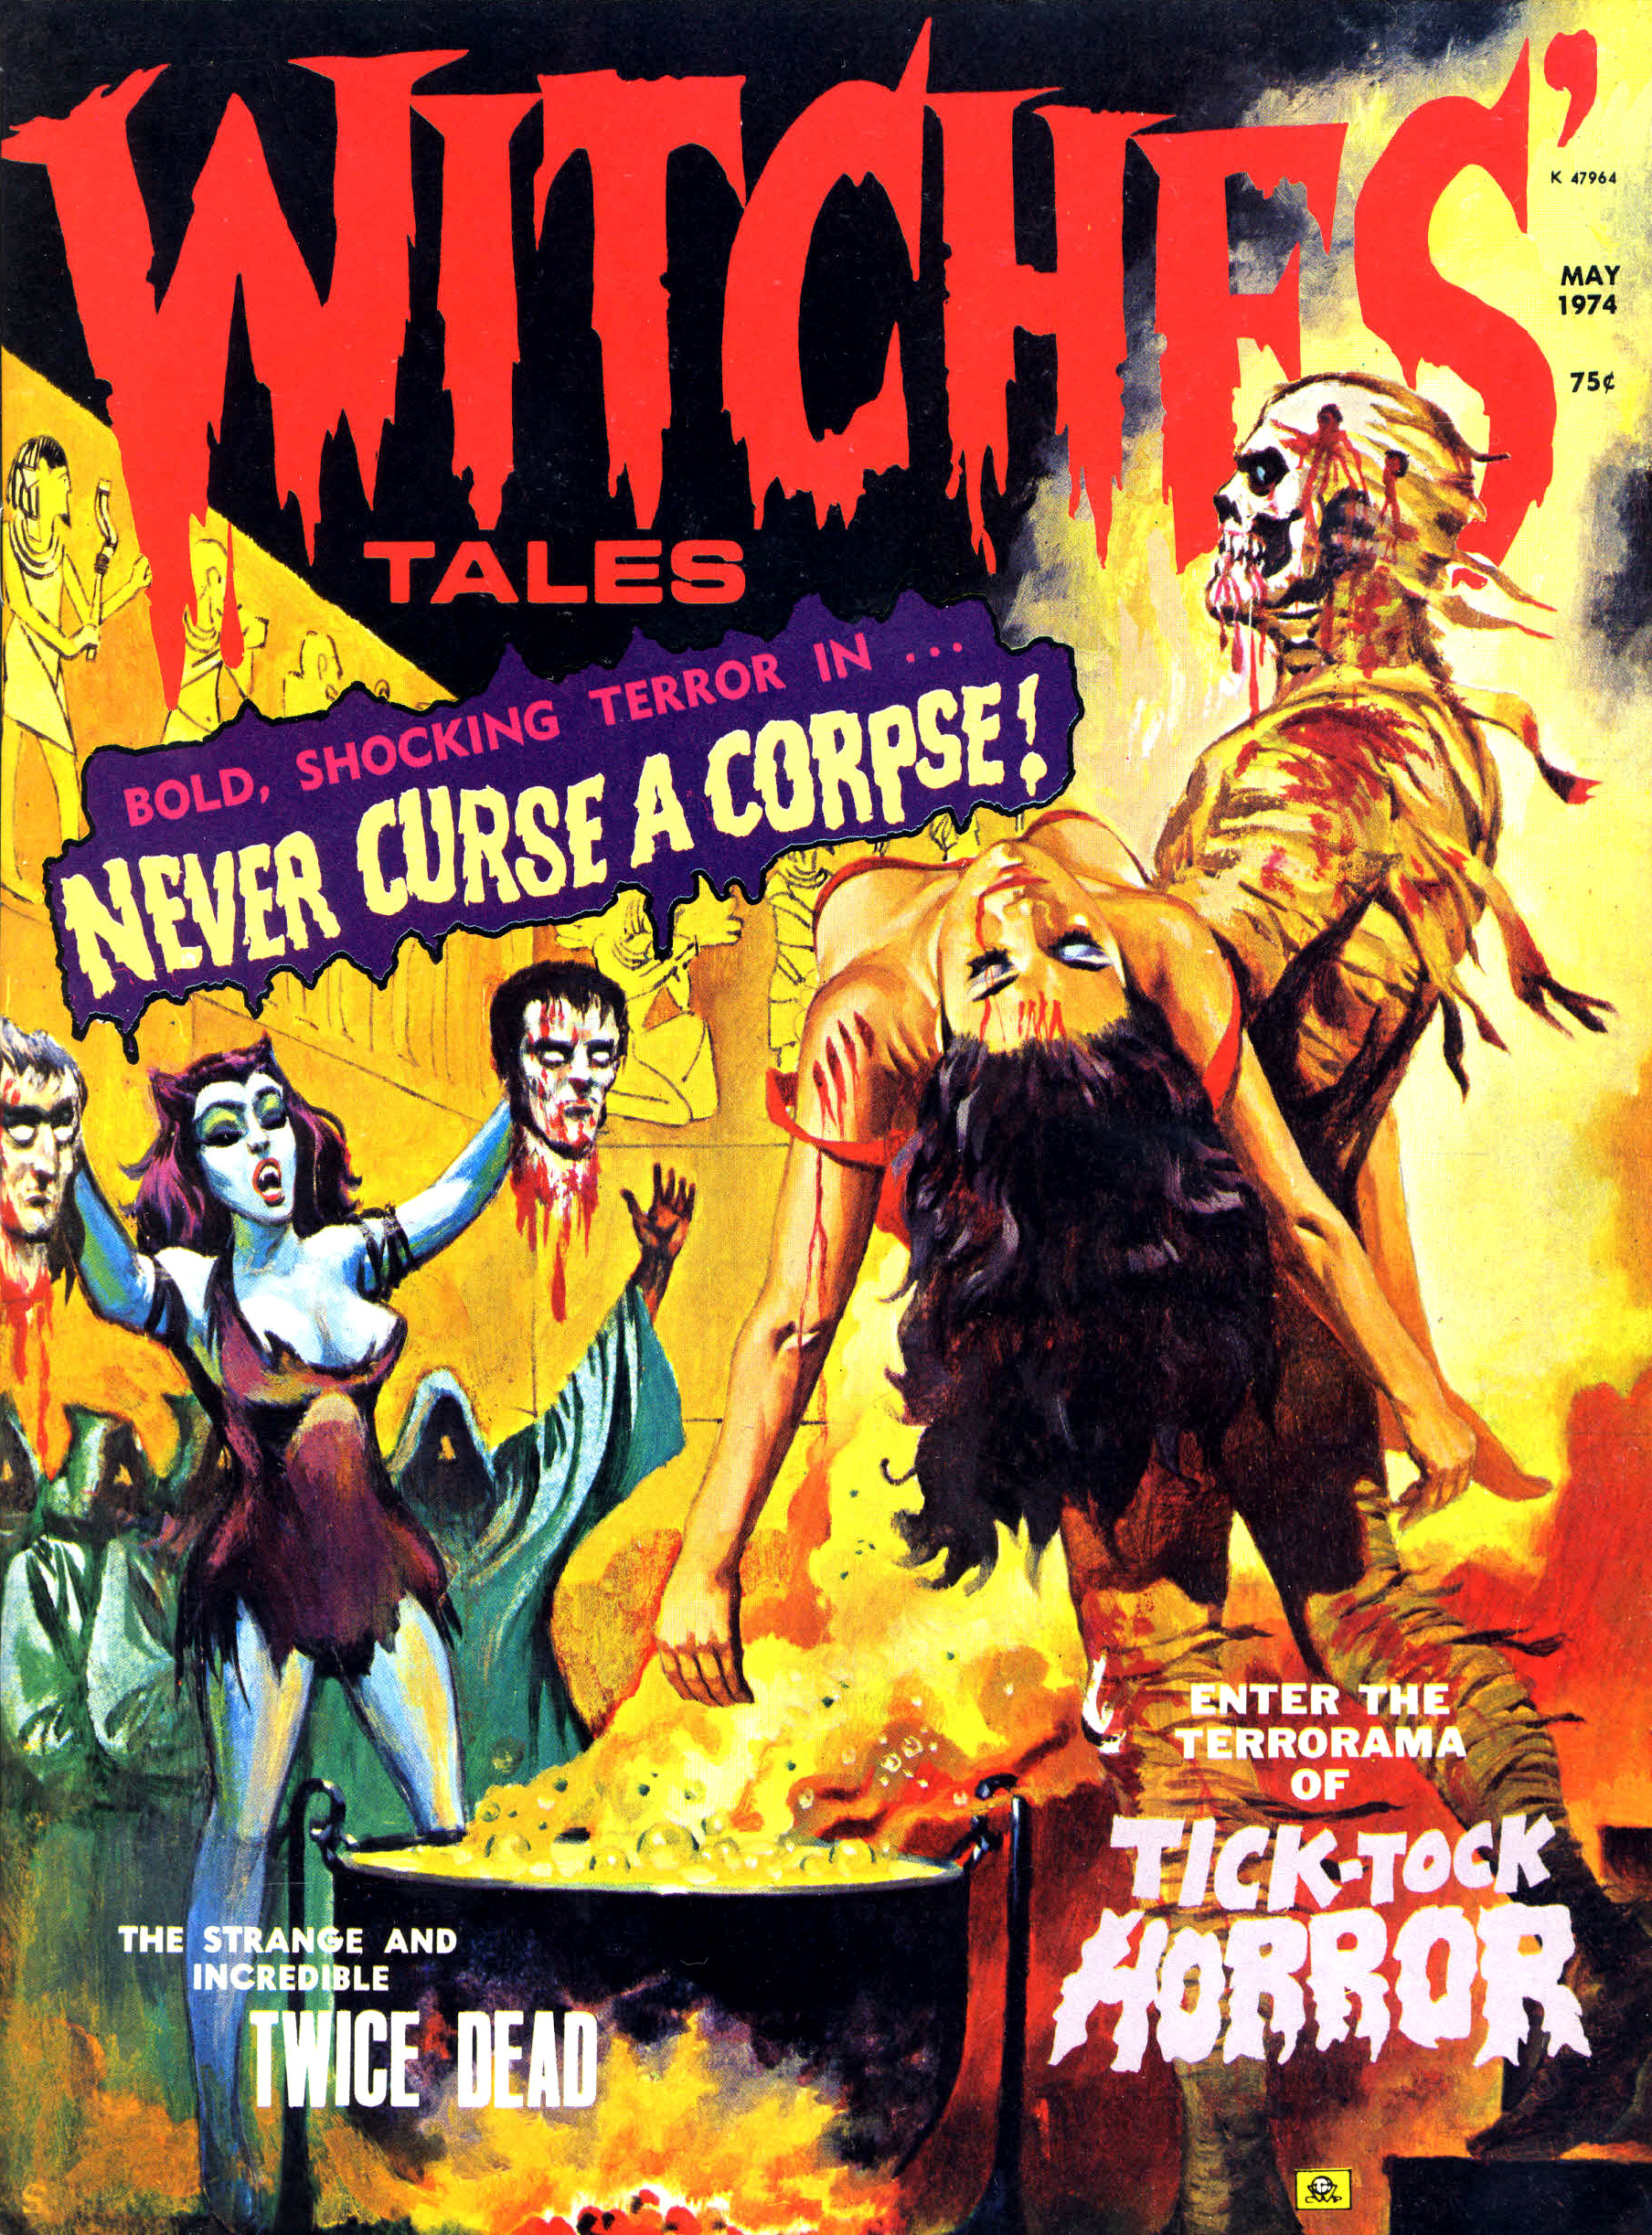 Witches' Tales Vol. 6 #3 (Eerie Publications 1974)